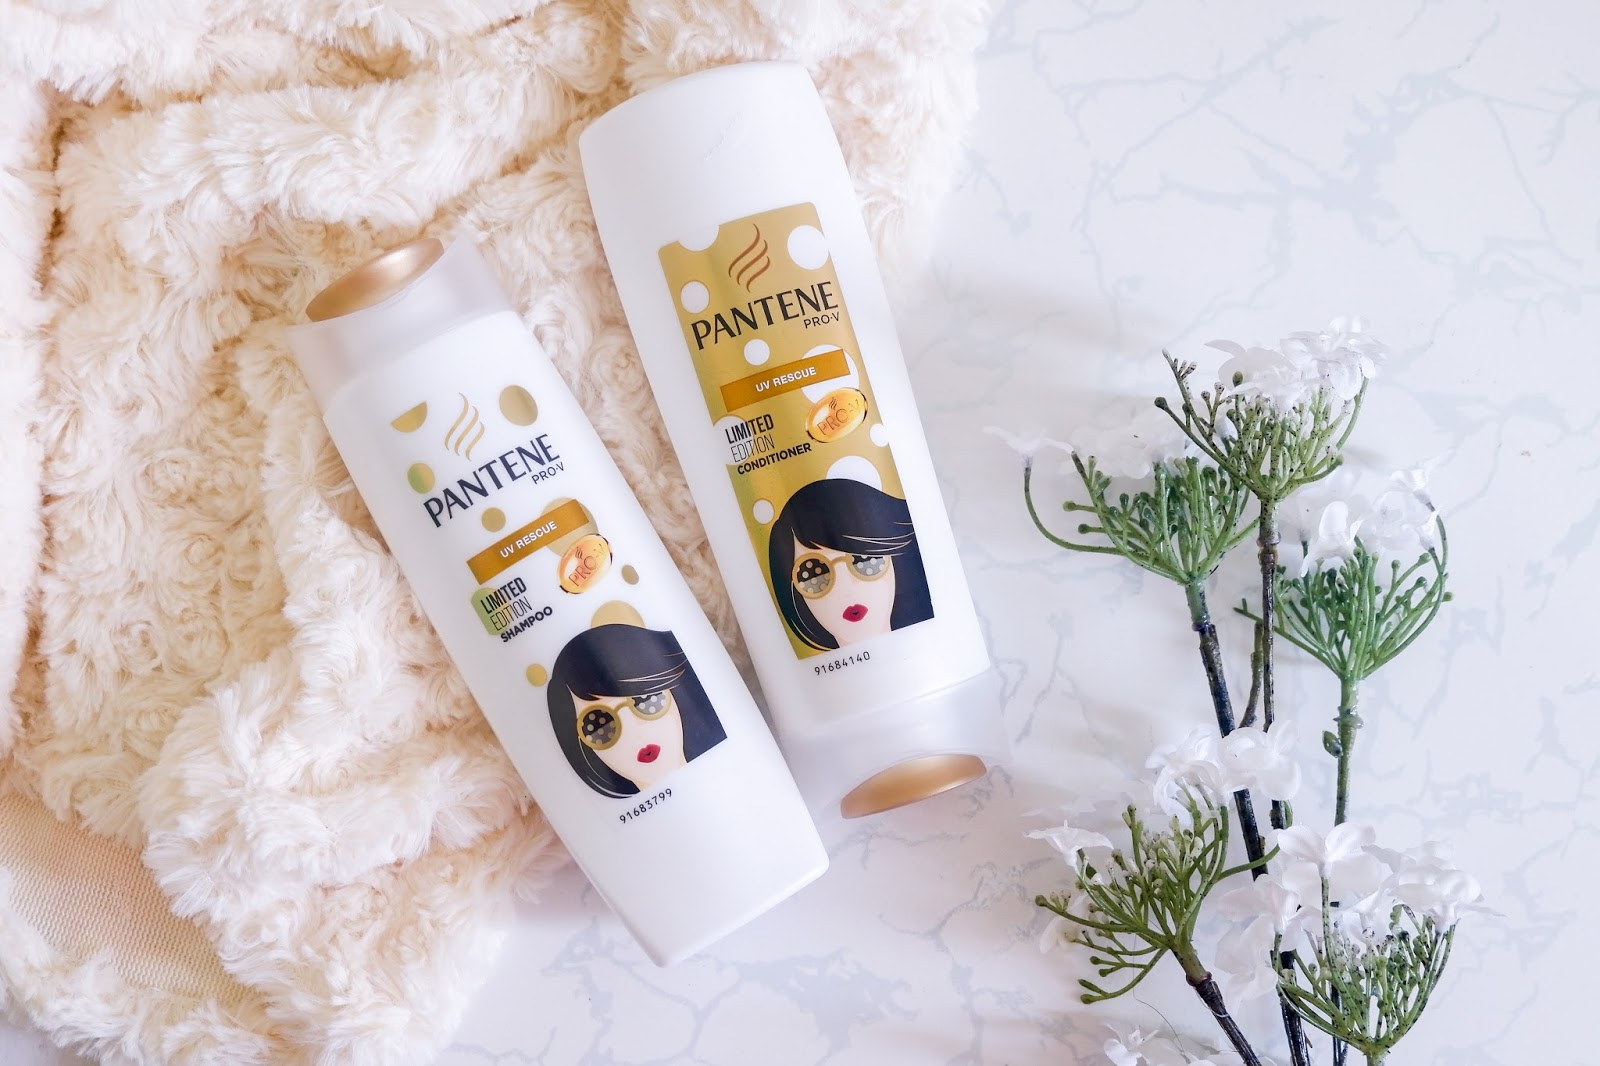 HOW TO HAVE A STRONG AND HEALTHY HAIR THIS SUMMER SEASON WITH PANTENE UV RESCUE LIMITED EDITION (REVIEW)